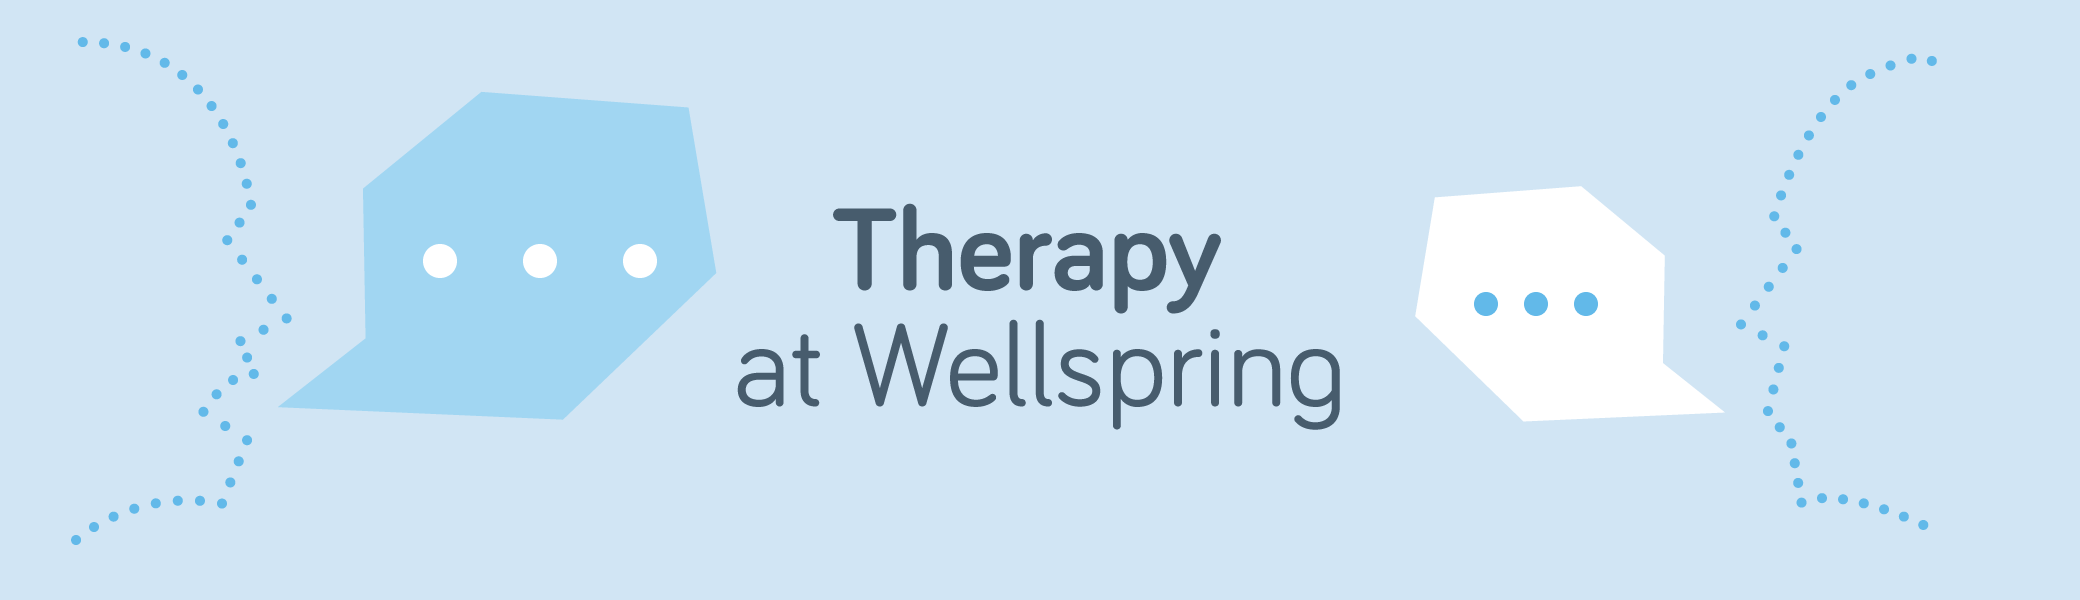 WS-Banner_Therapy_x2